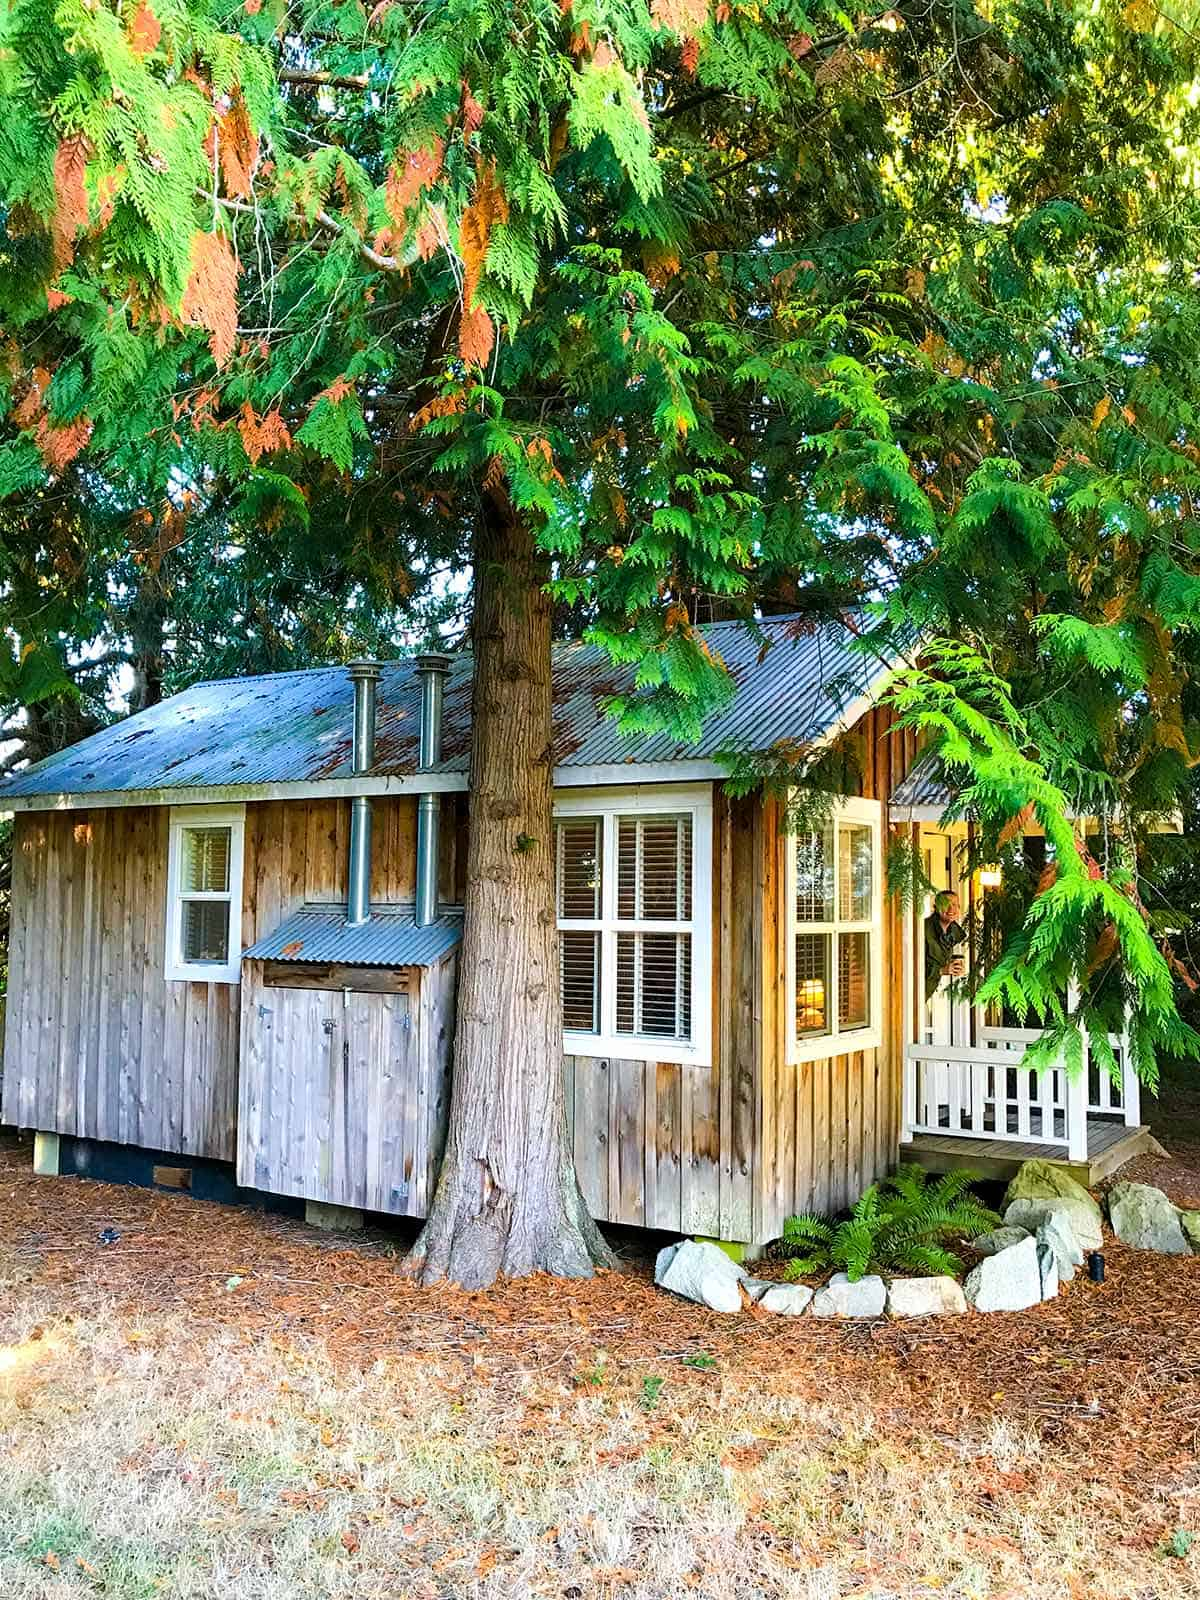 Our Cottage at Lopez Farm Cottages -- We loved it!